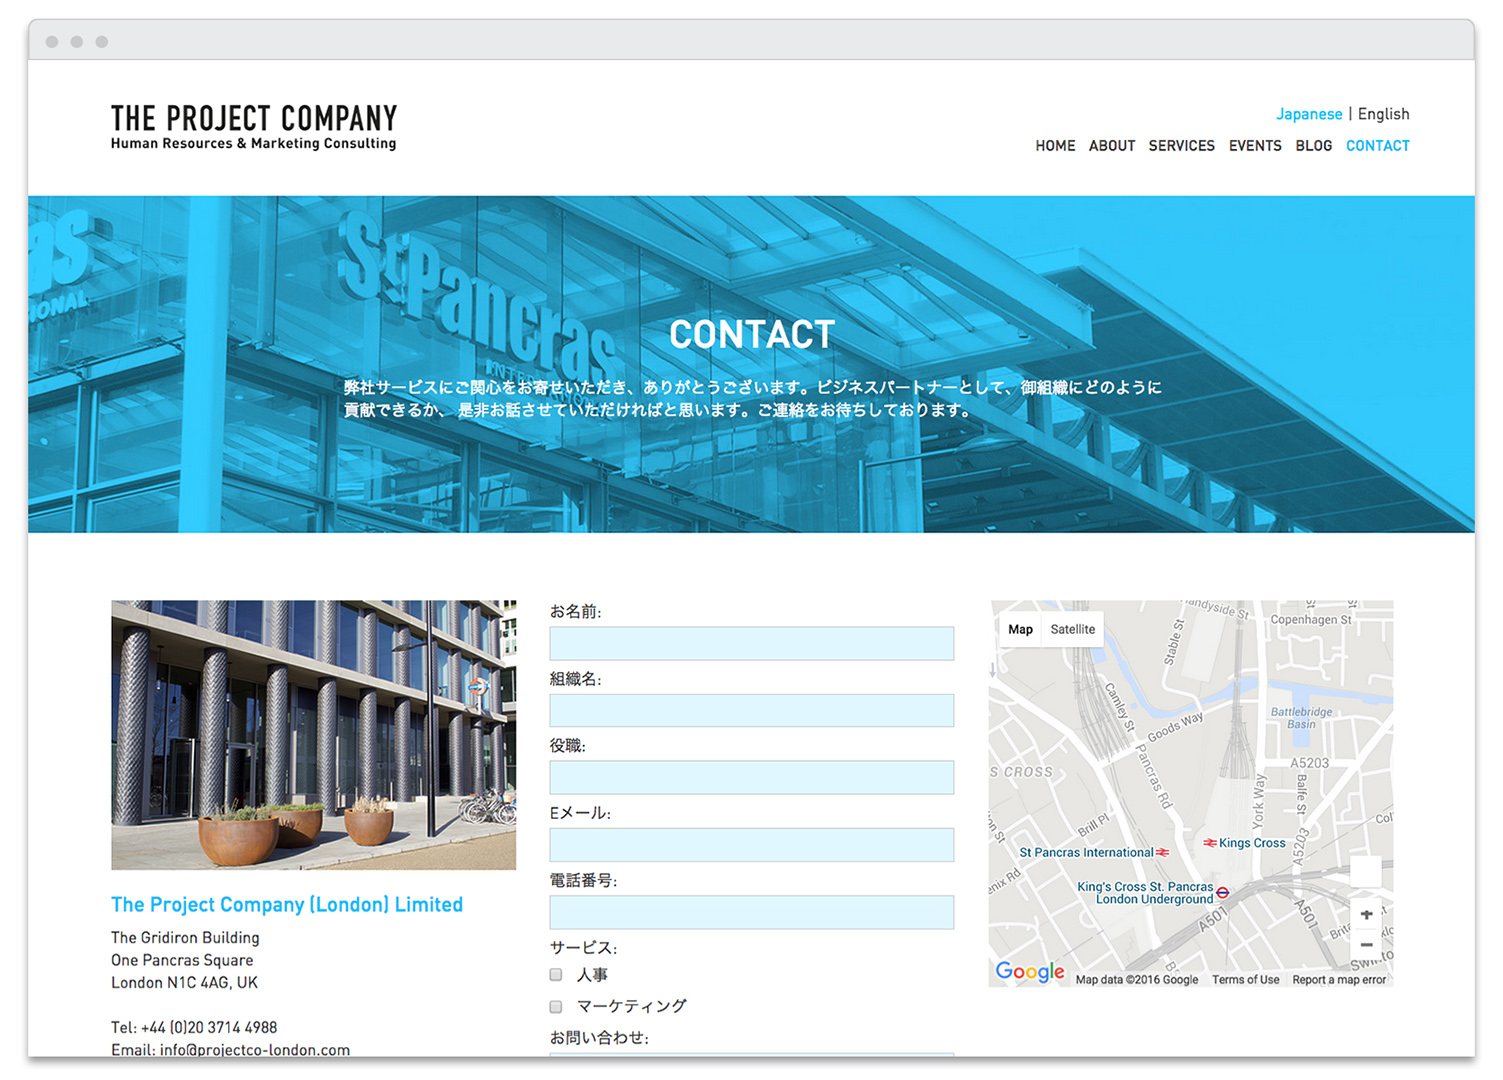 ProjectCompanyBrowser-contact